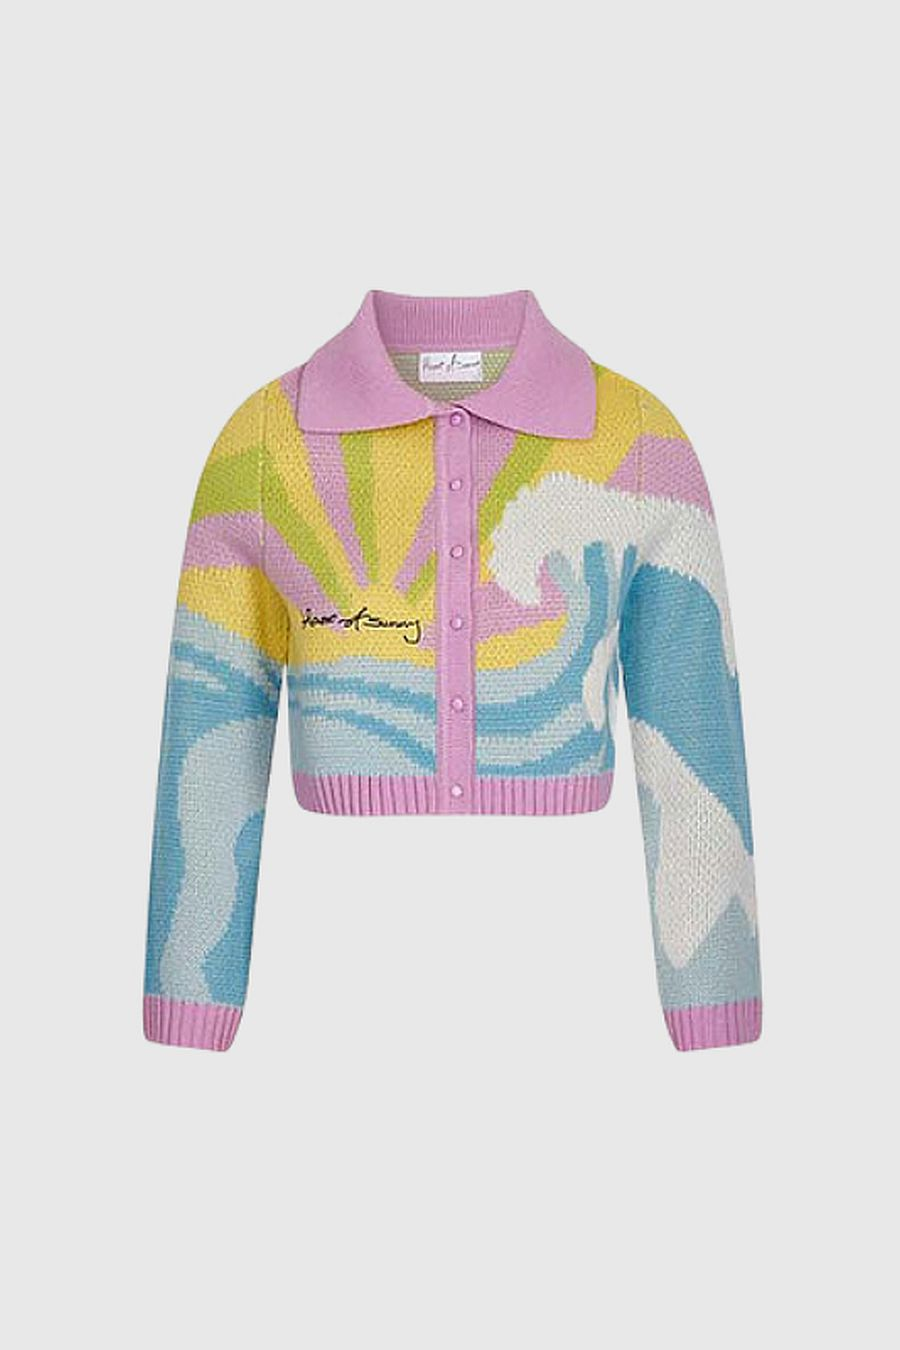 House Of Sunny High Tide Cardigan